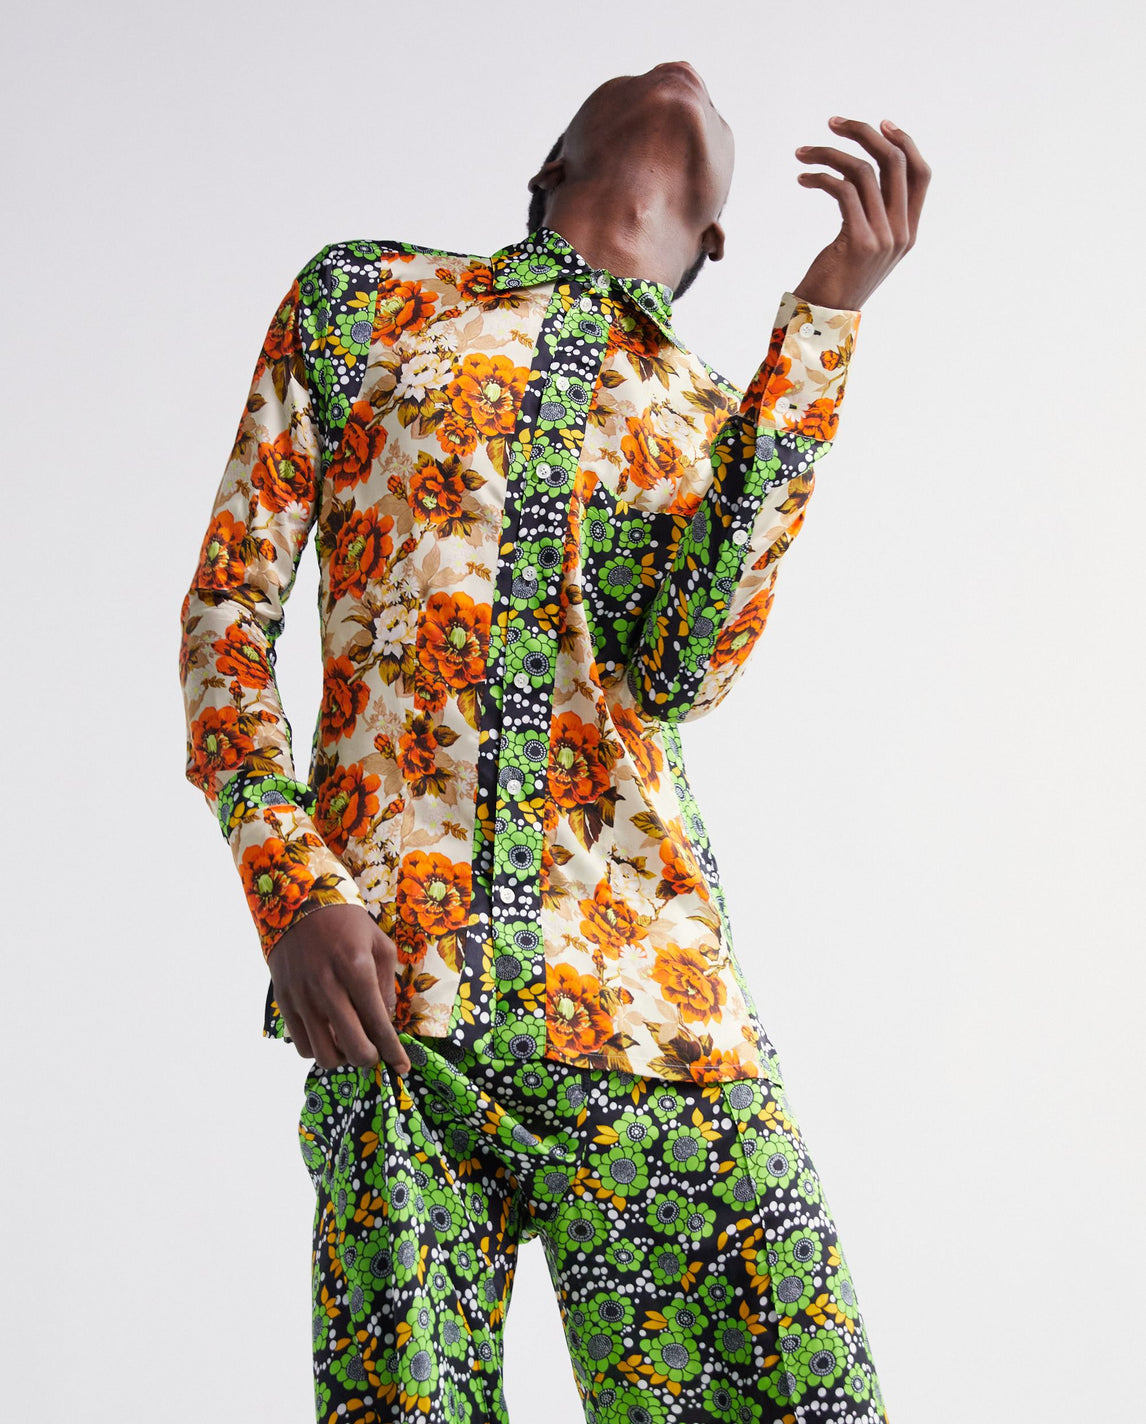 Viscose Print Collared Shirt - Orange / Green MENS KWAIDAN EDITIONS